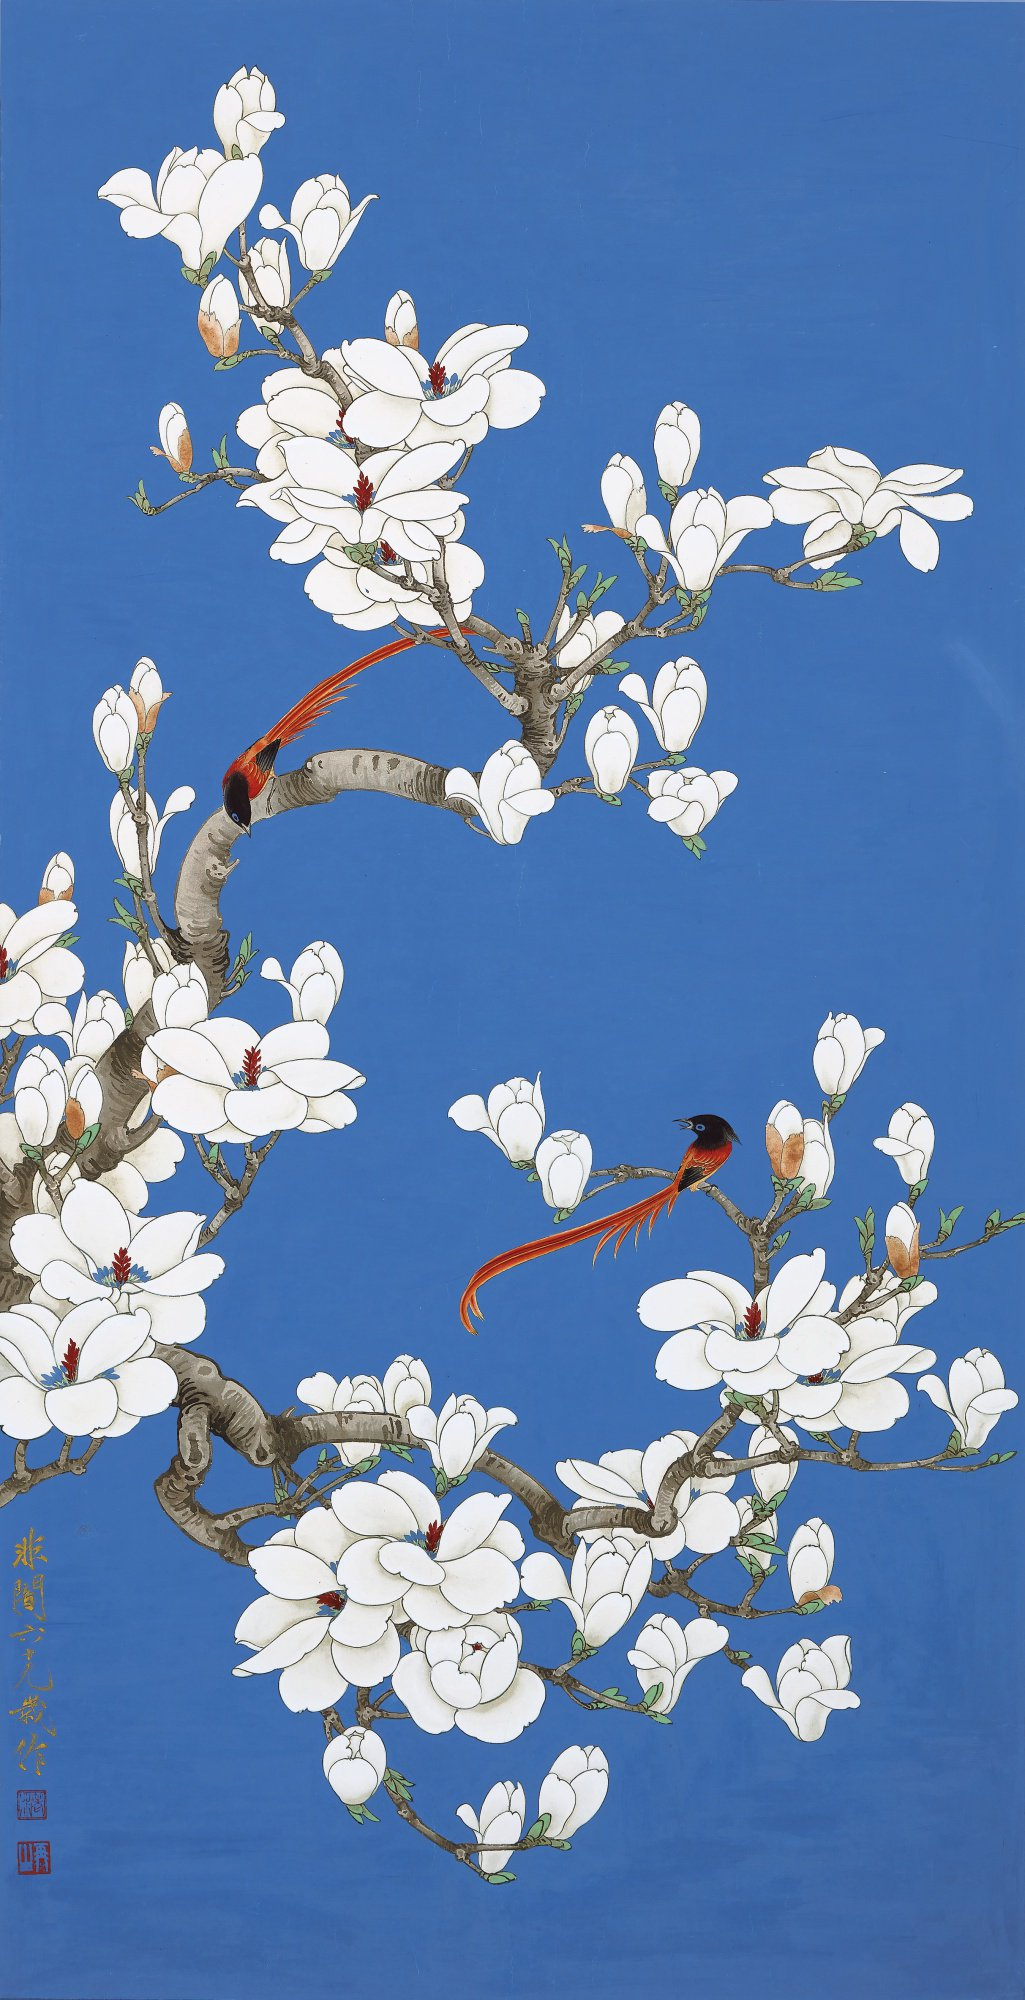 Yu Fei'an Paradise Flycatchers by Magnolia https://t.co/4zTNLc2og7